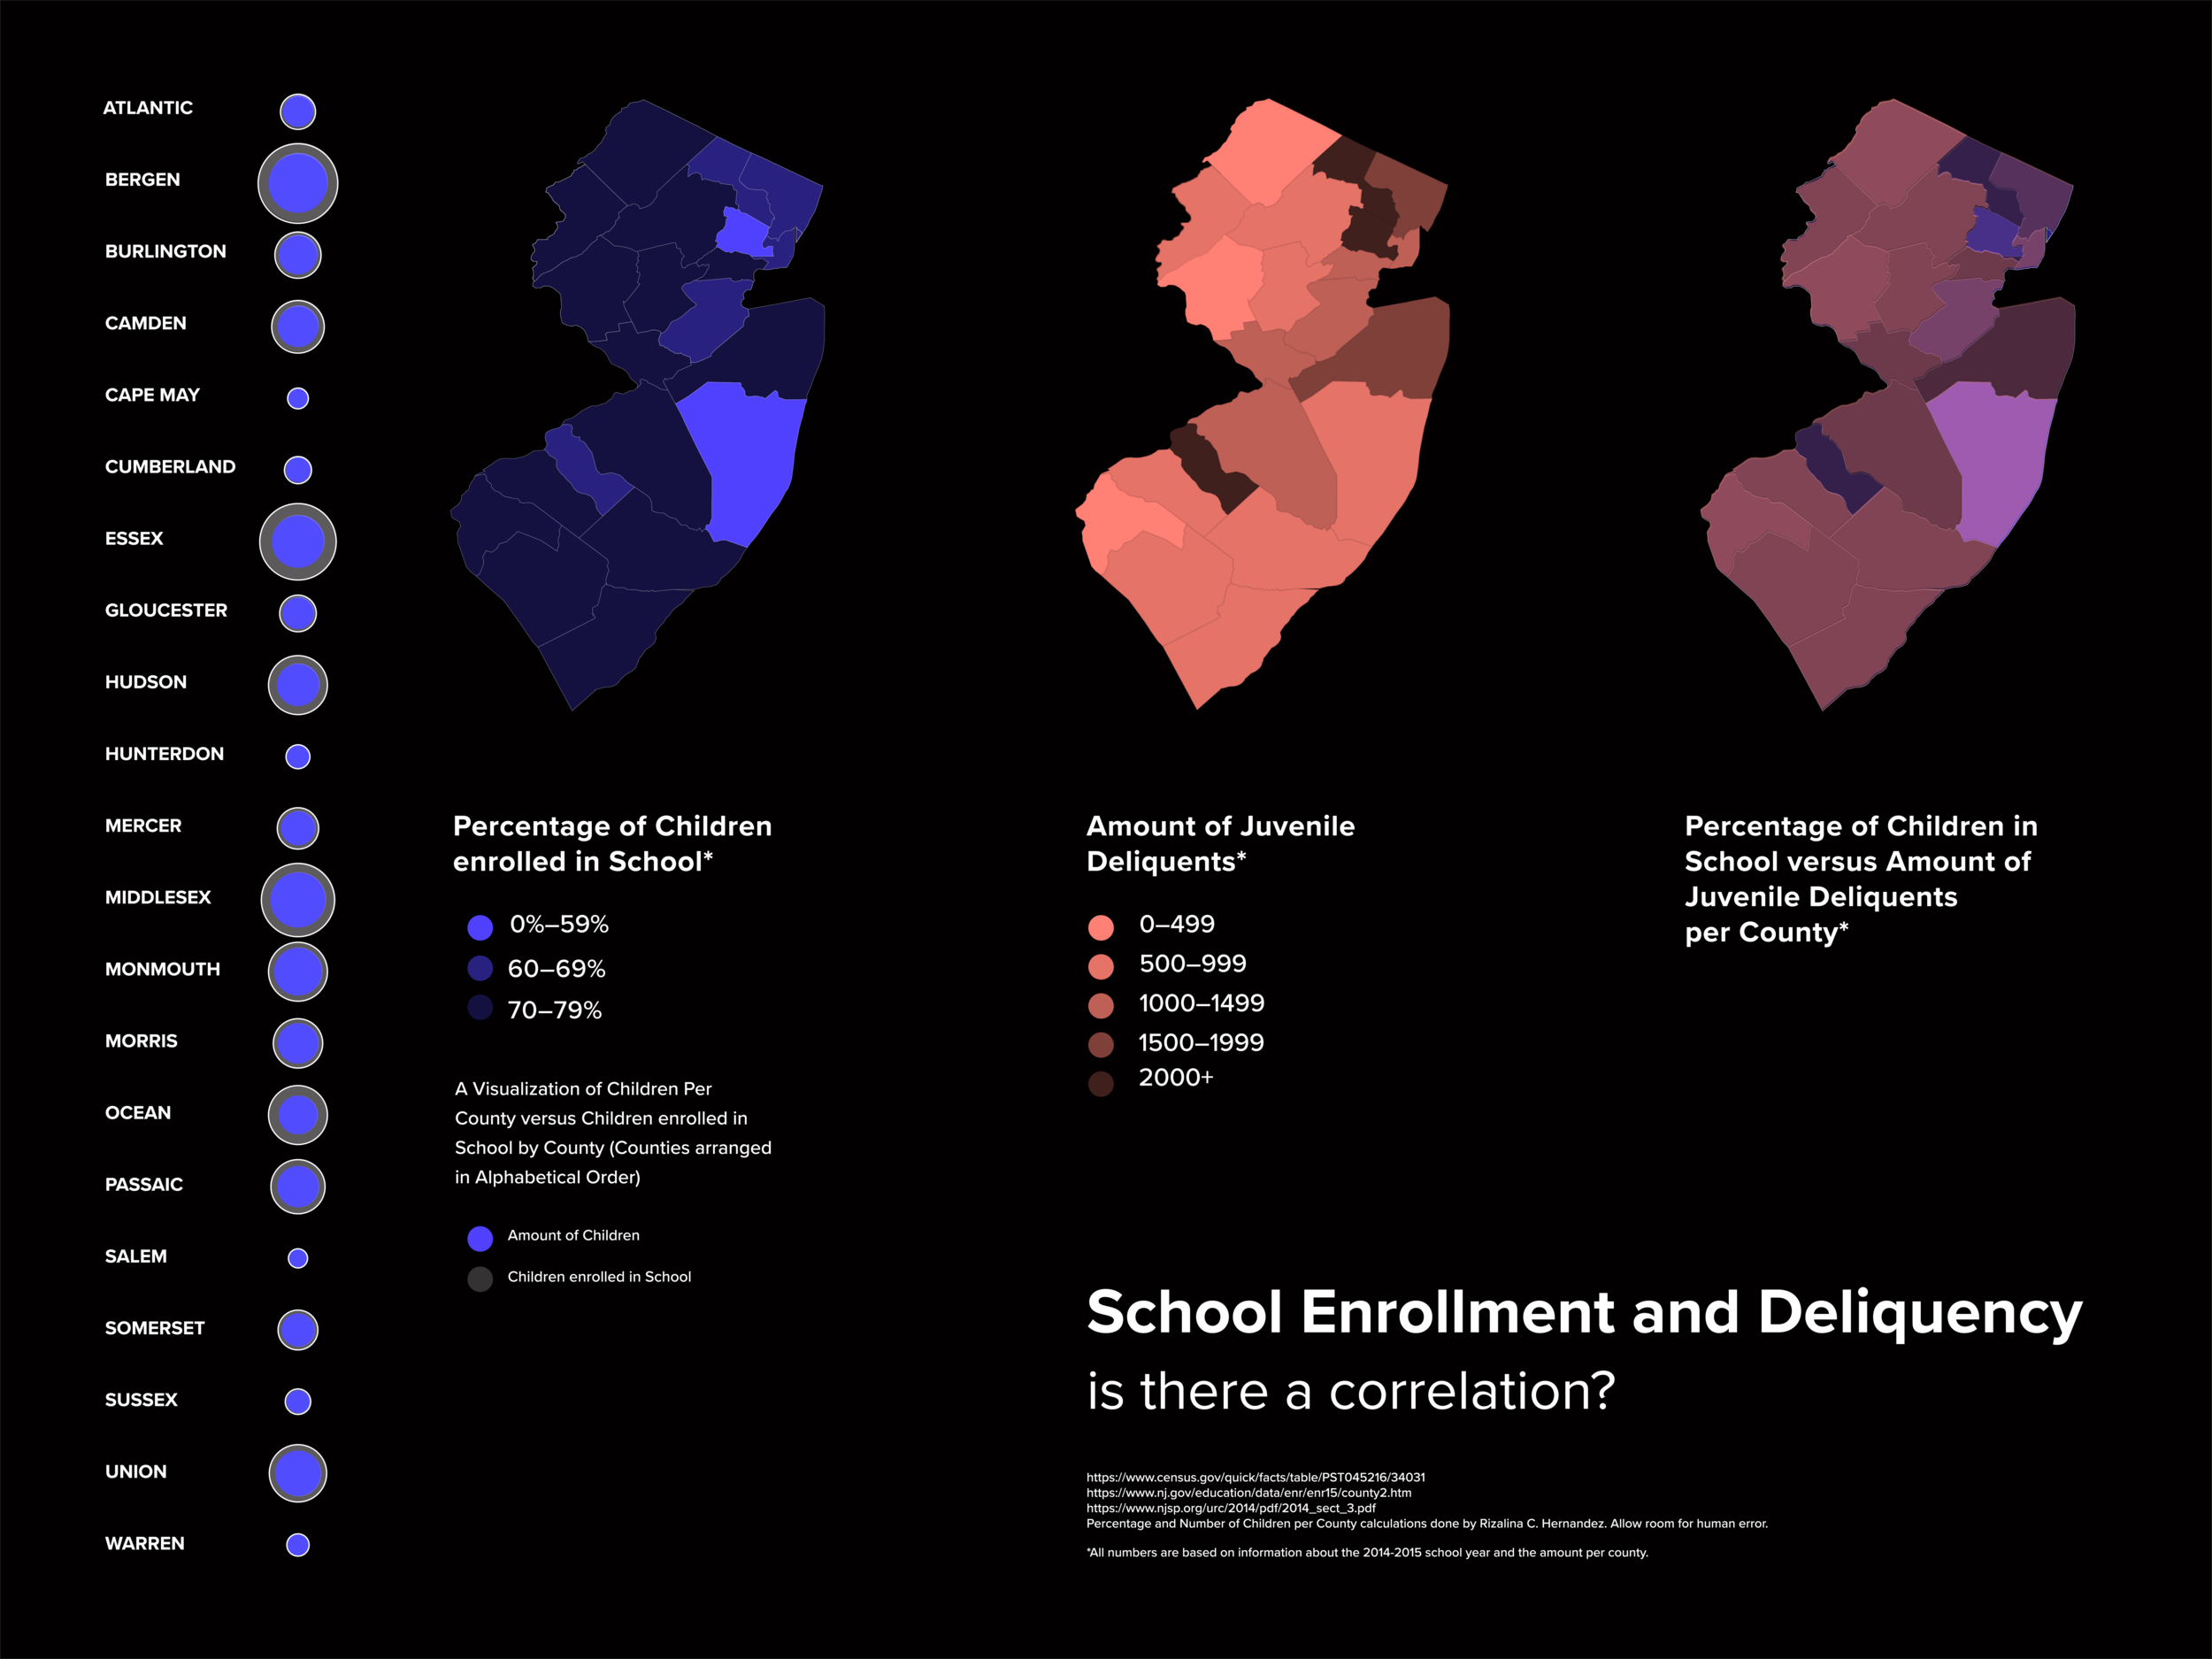 Created with Processing, this data visualization is meant to analyze the rates of school attendance with the juvenile incarceration rates per county in the state of New Jersey.